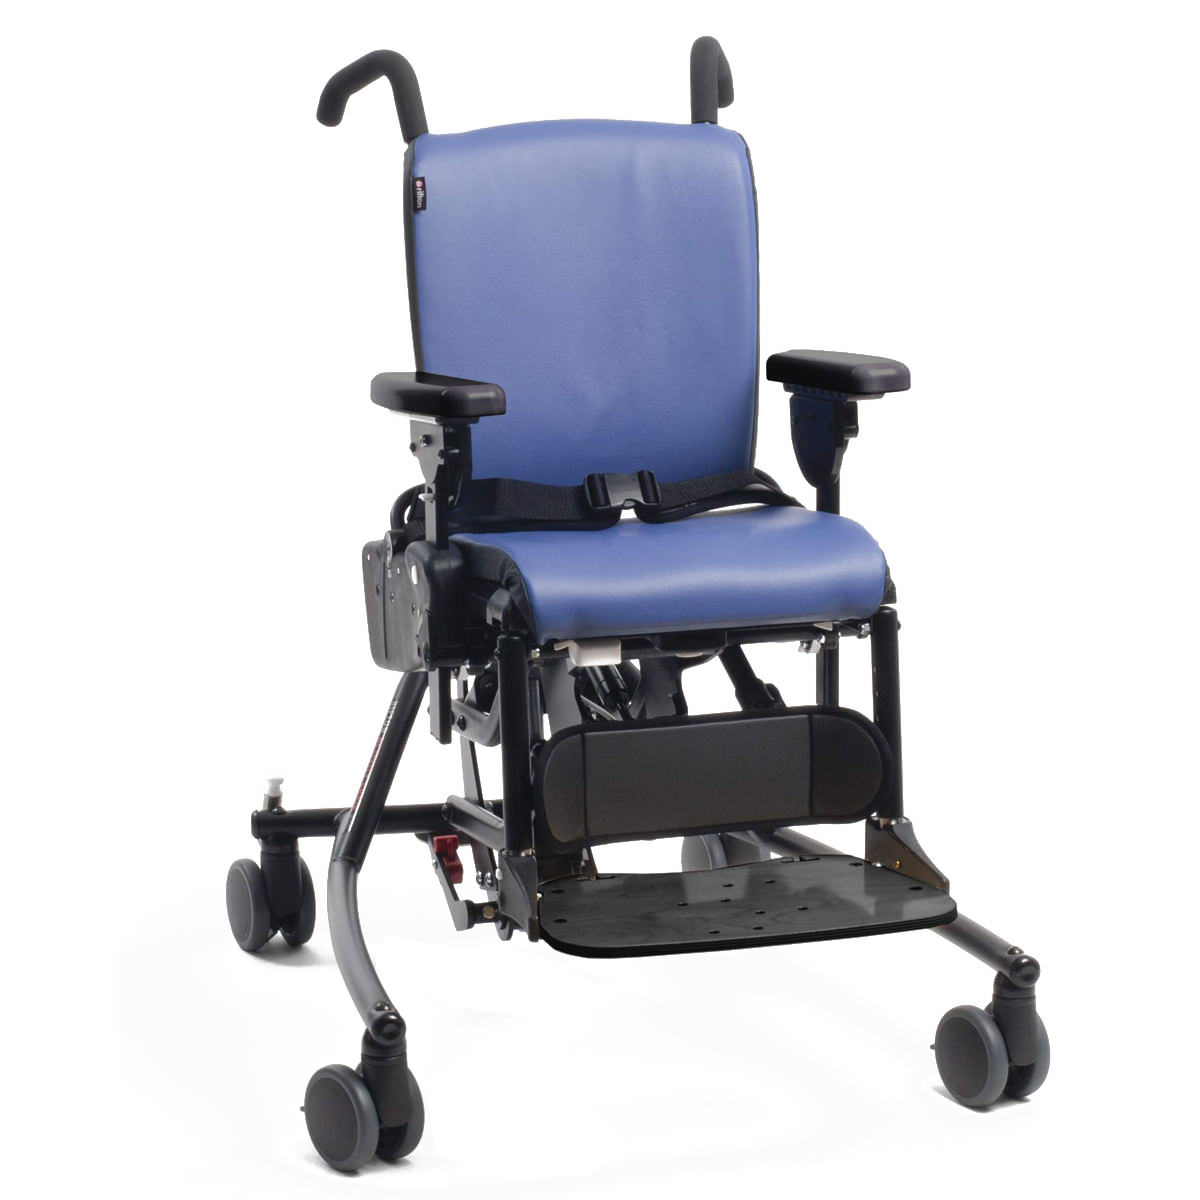 Rifton activity chair with hi-lo base - Medium